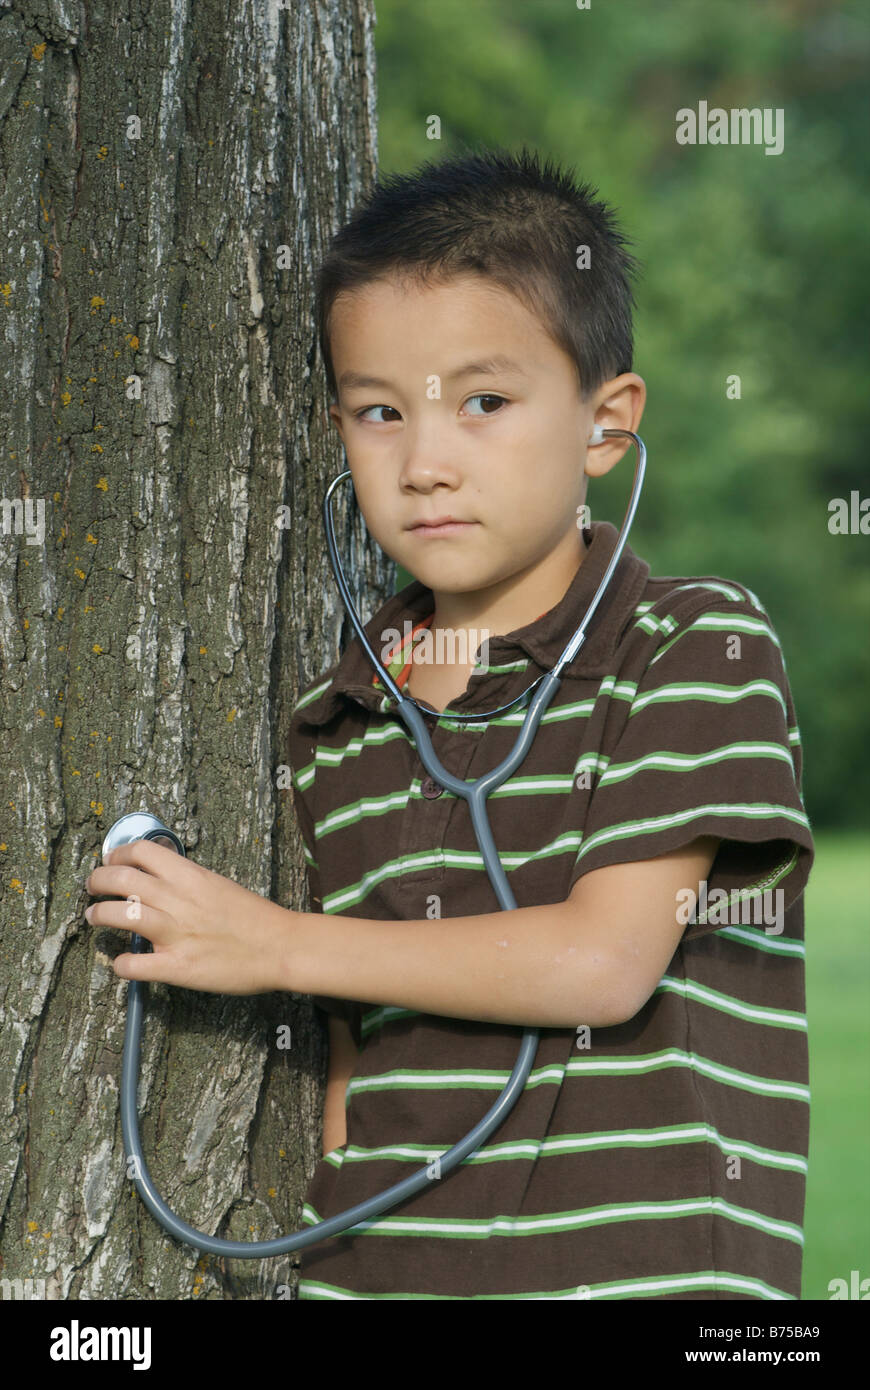 Seven year old boy with stethescope placed on tree, Winnipeg, Canada - Stock Image